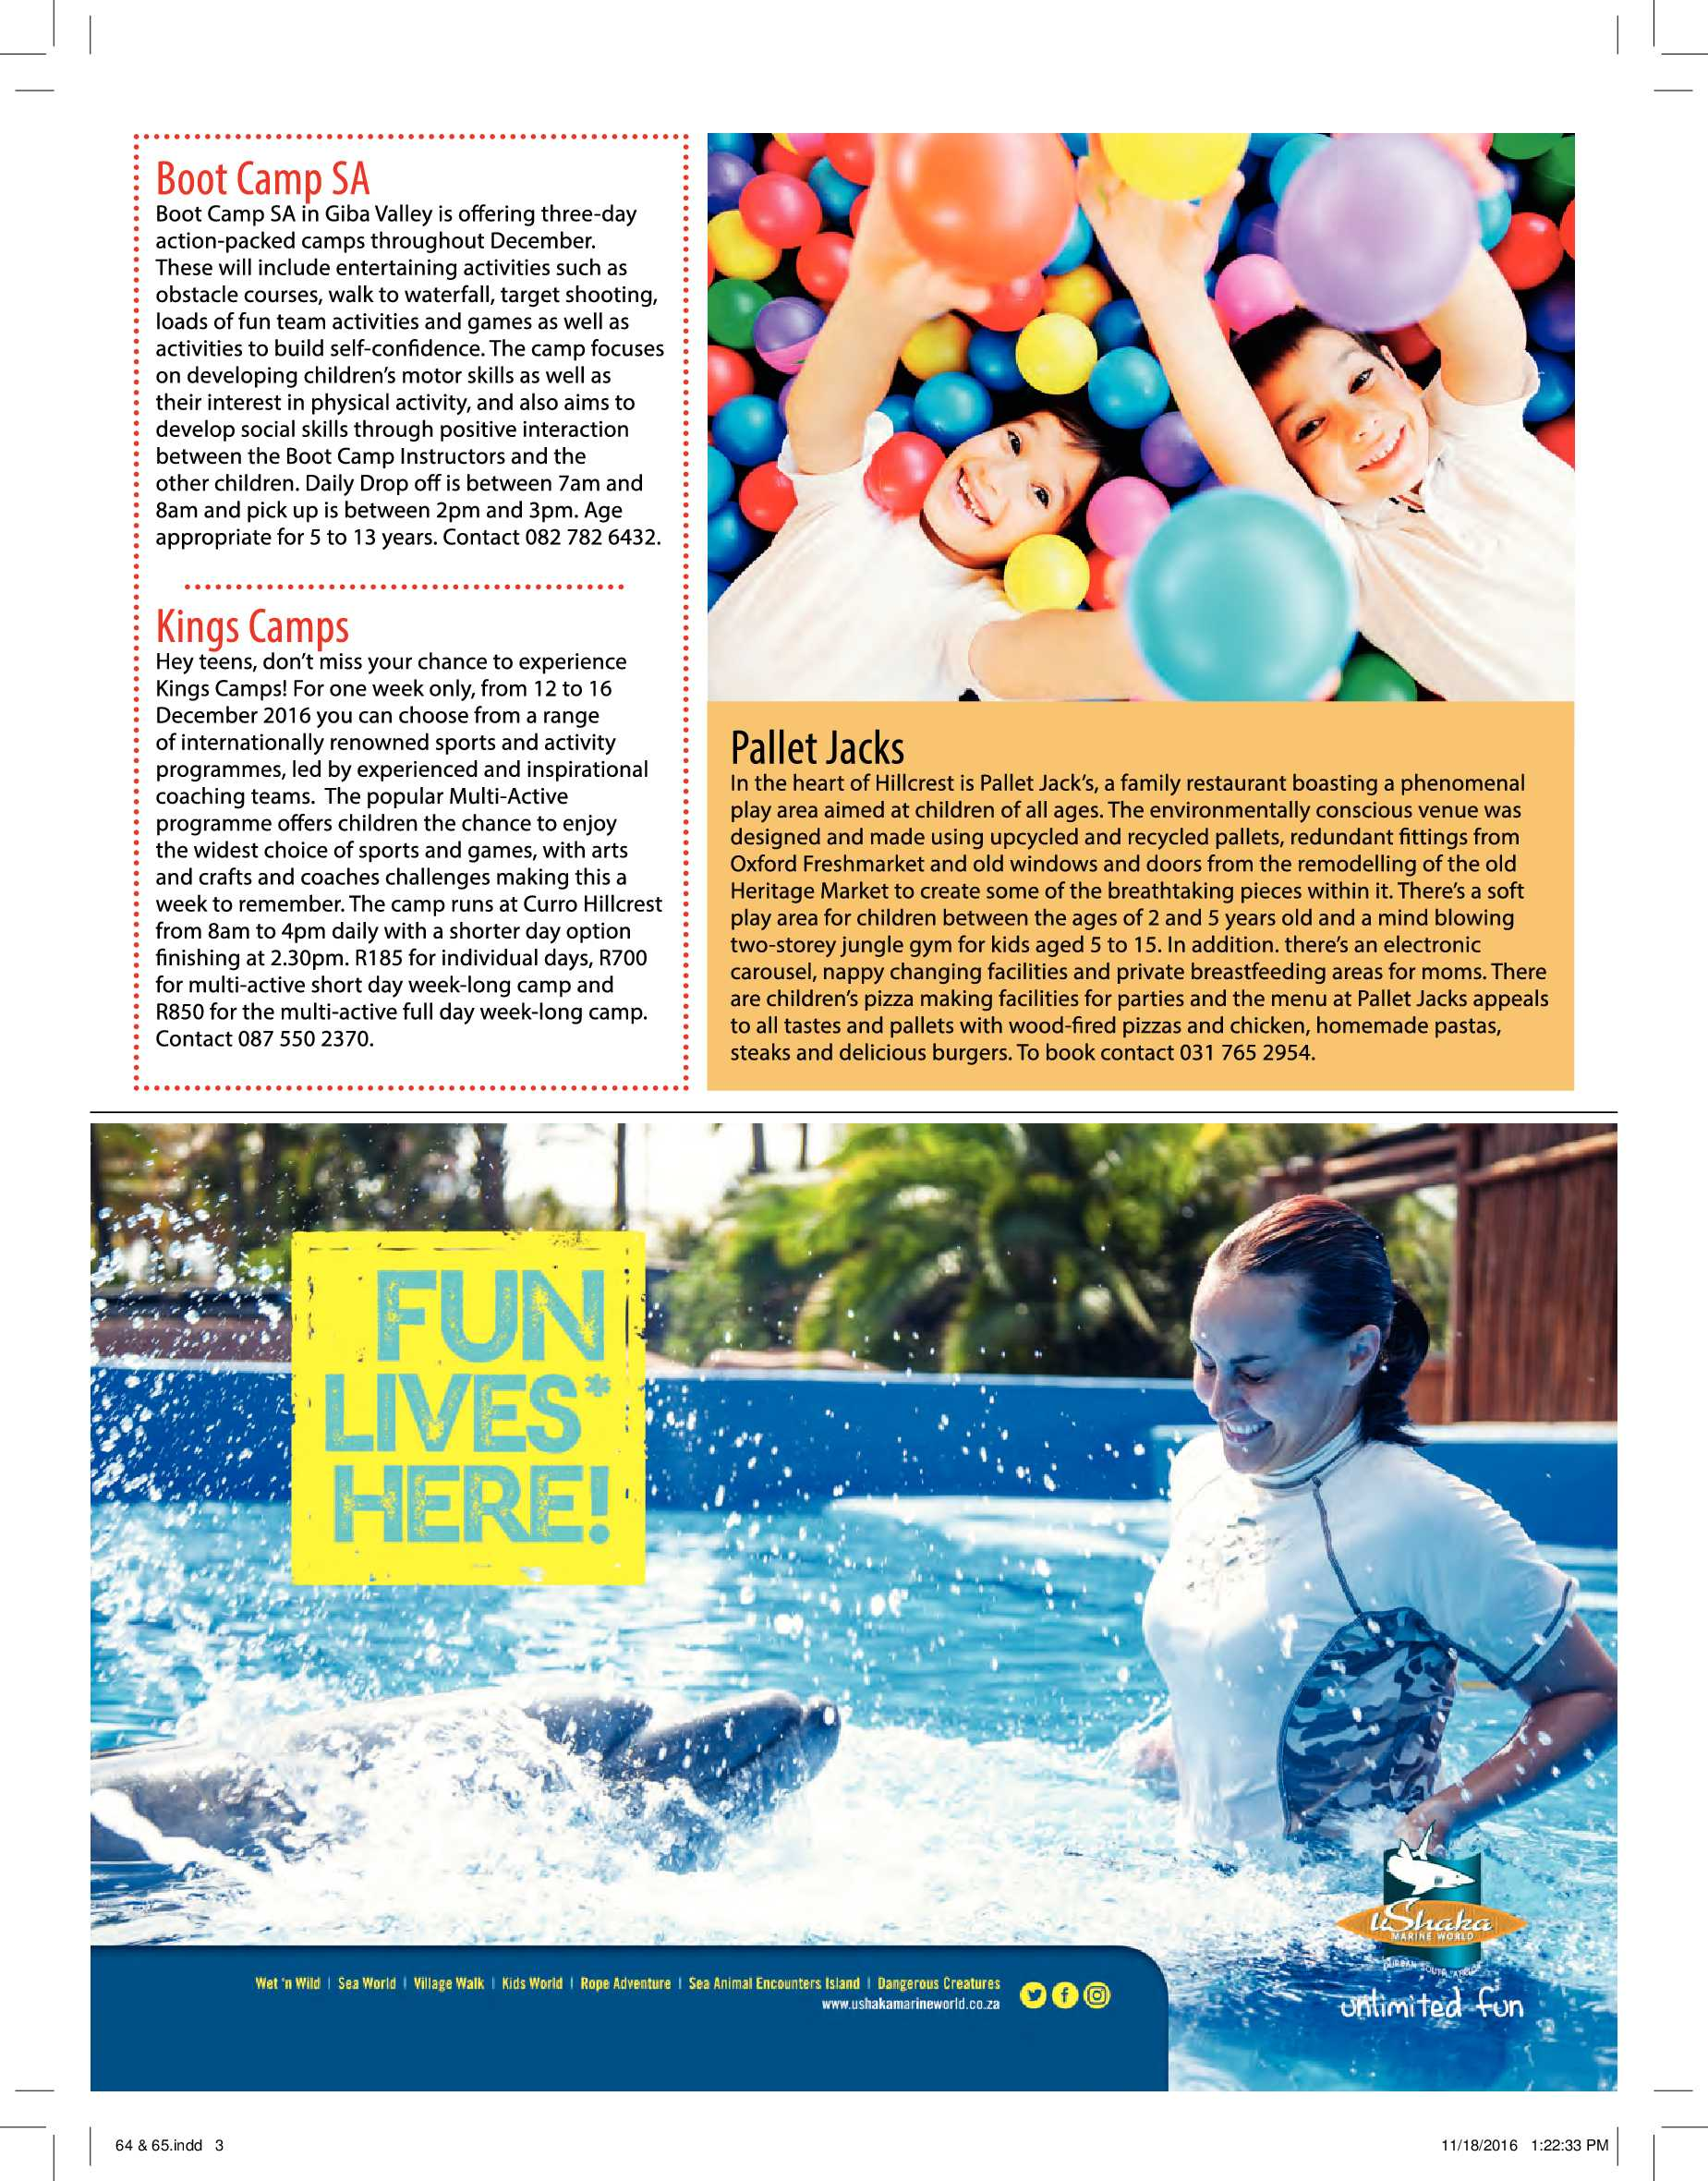 durban-get-it-magazine-december-2016-epapers-page-67